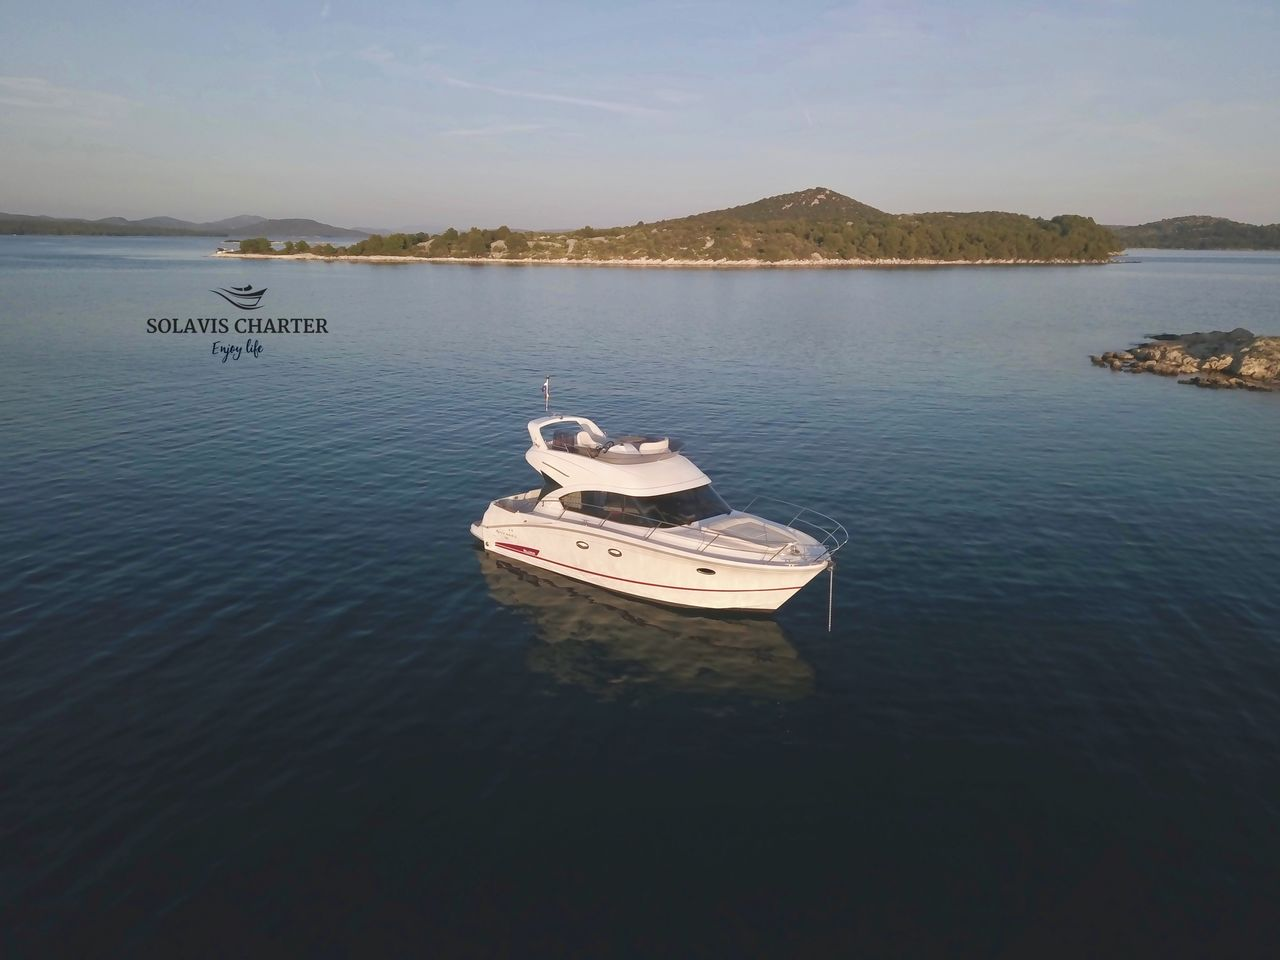 Antares 36 by Seadream Charter - immagine 2